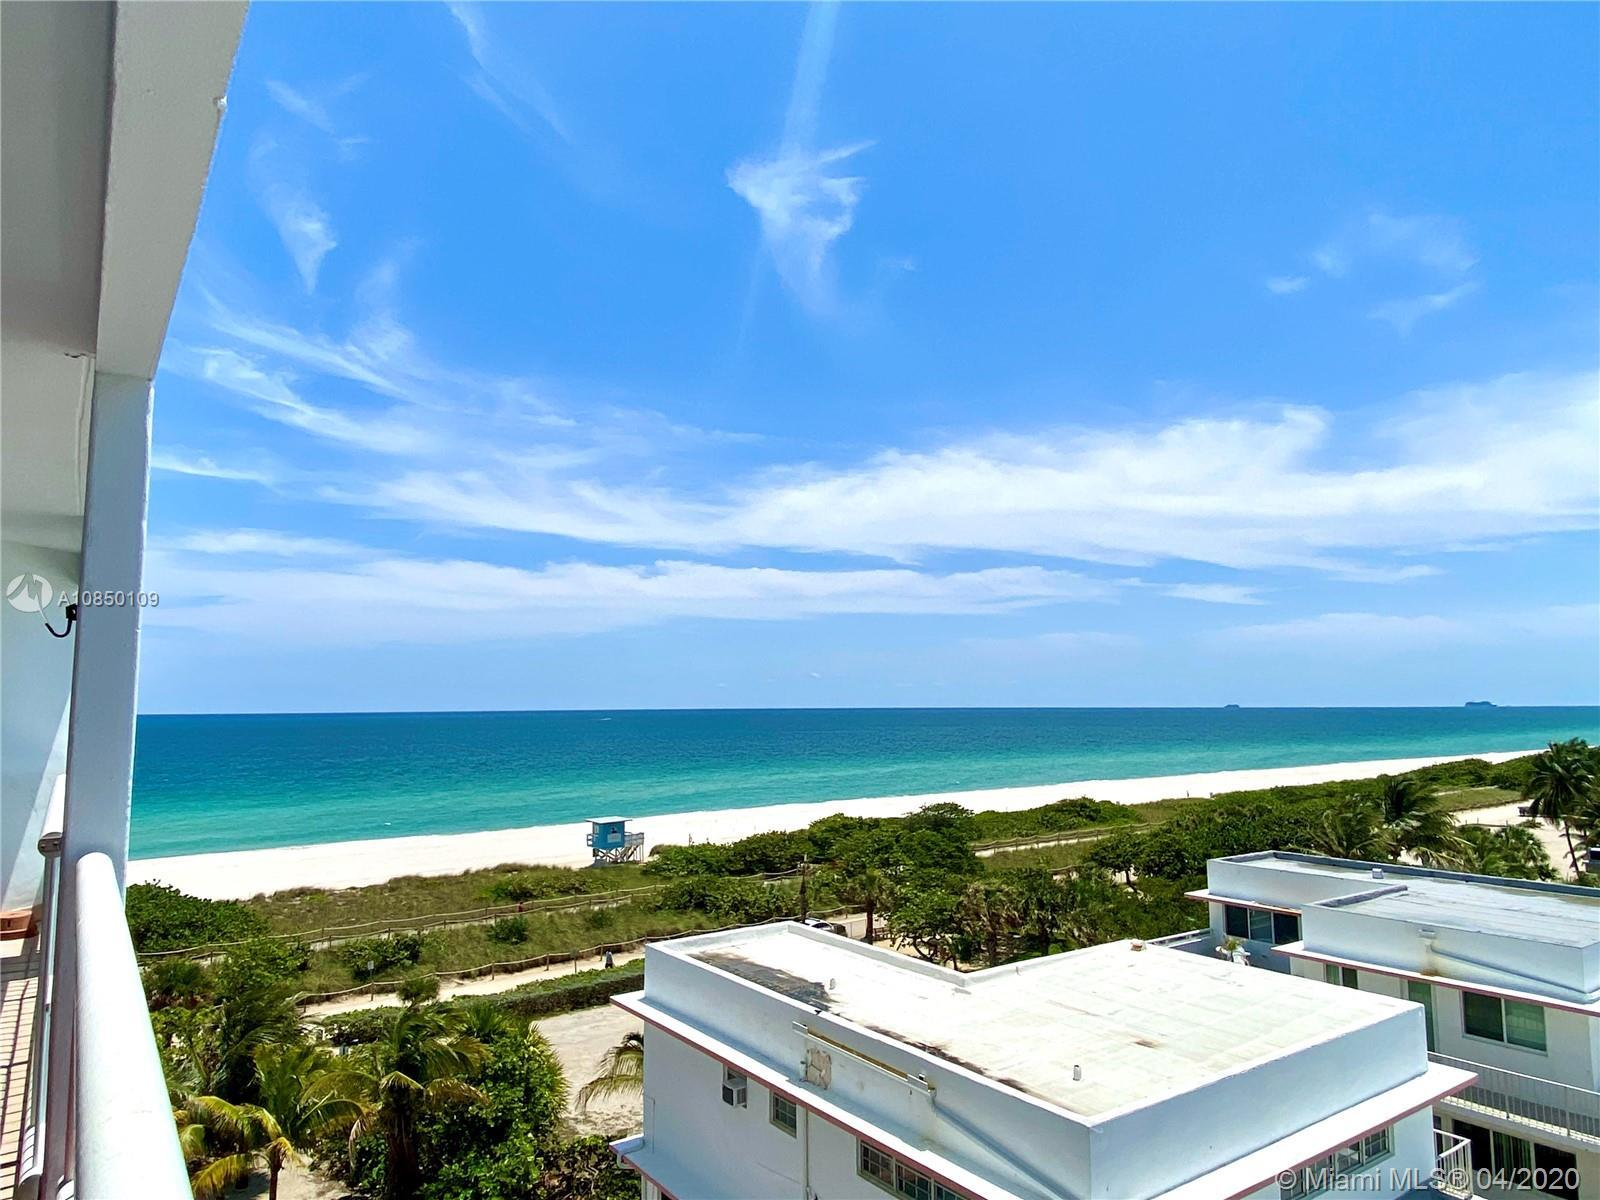 Enjoy beach living in this Surfside oceanfront boutique building with direct ocean and beach access.